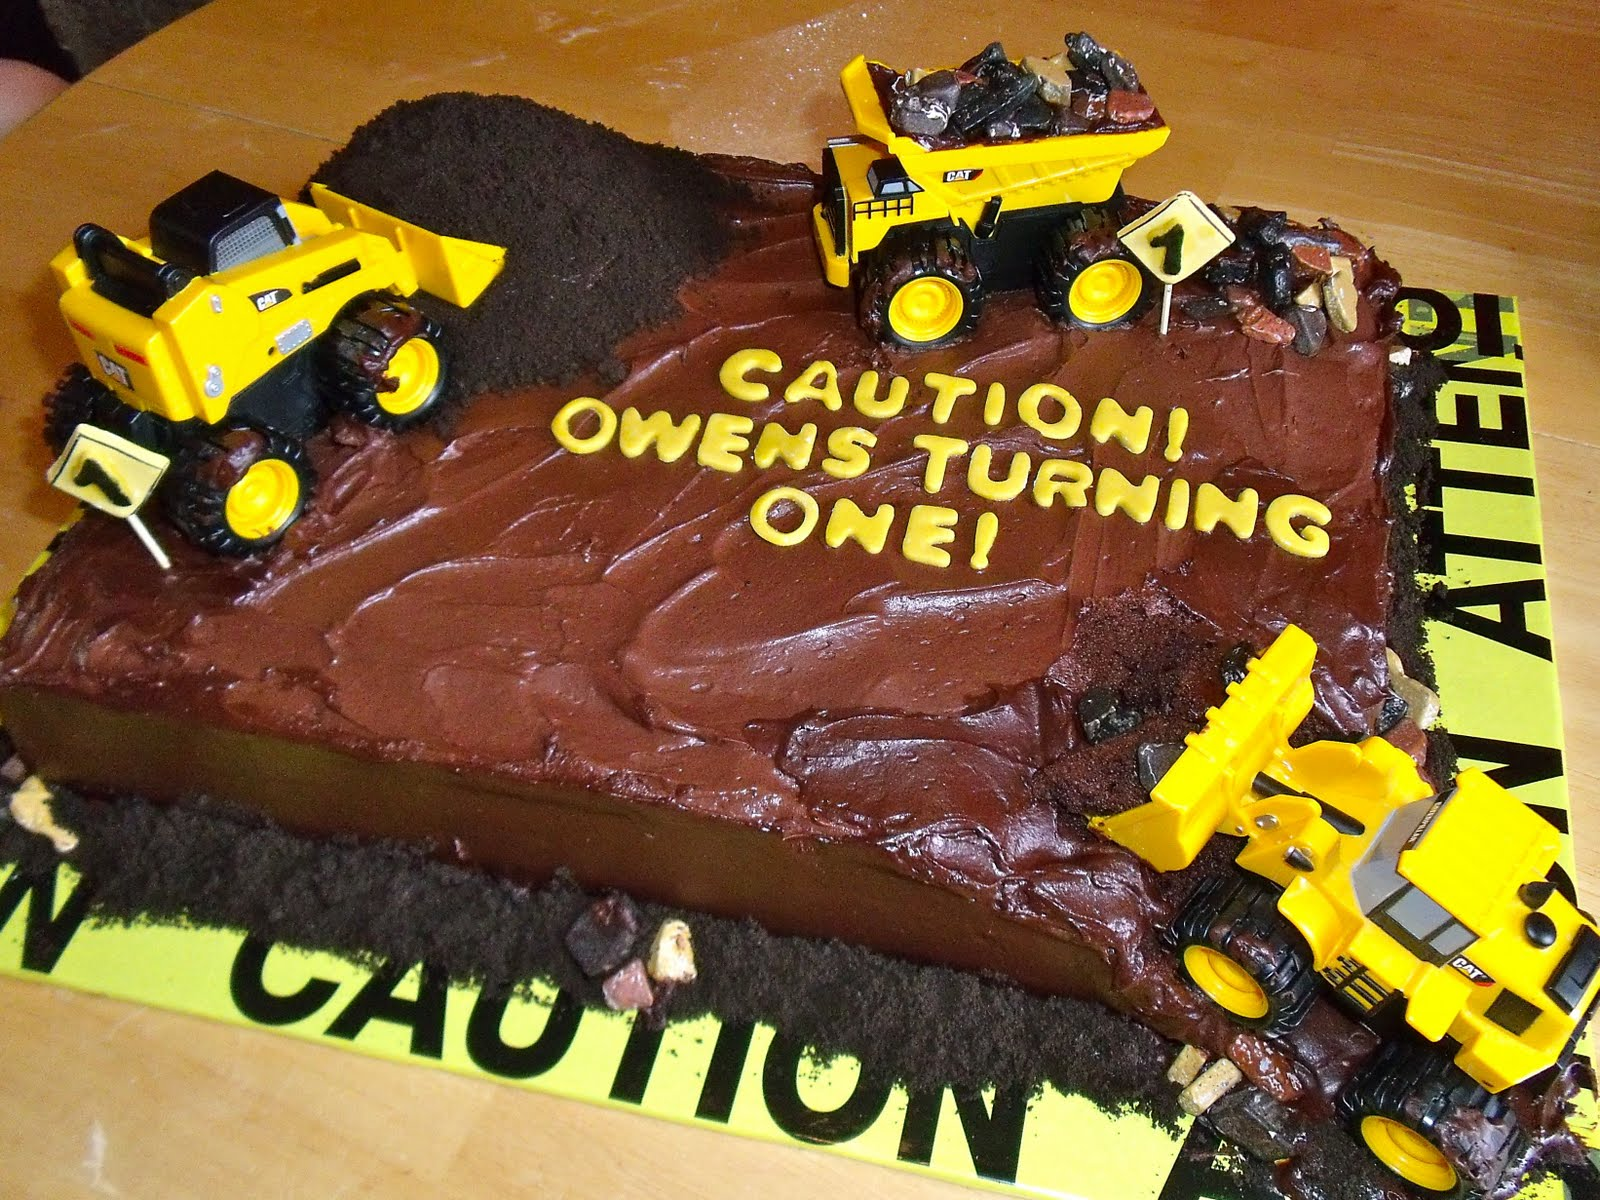 Holly Muffin Construction Site Cake Part 2